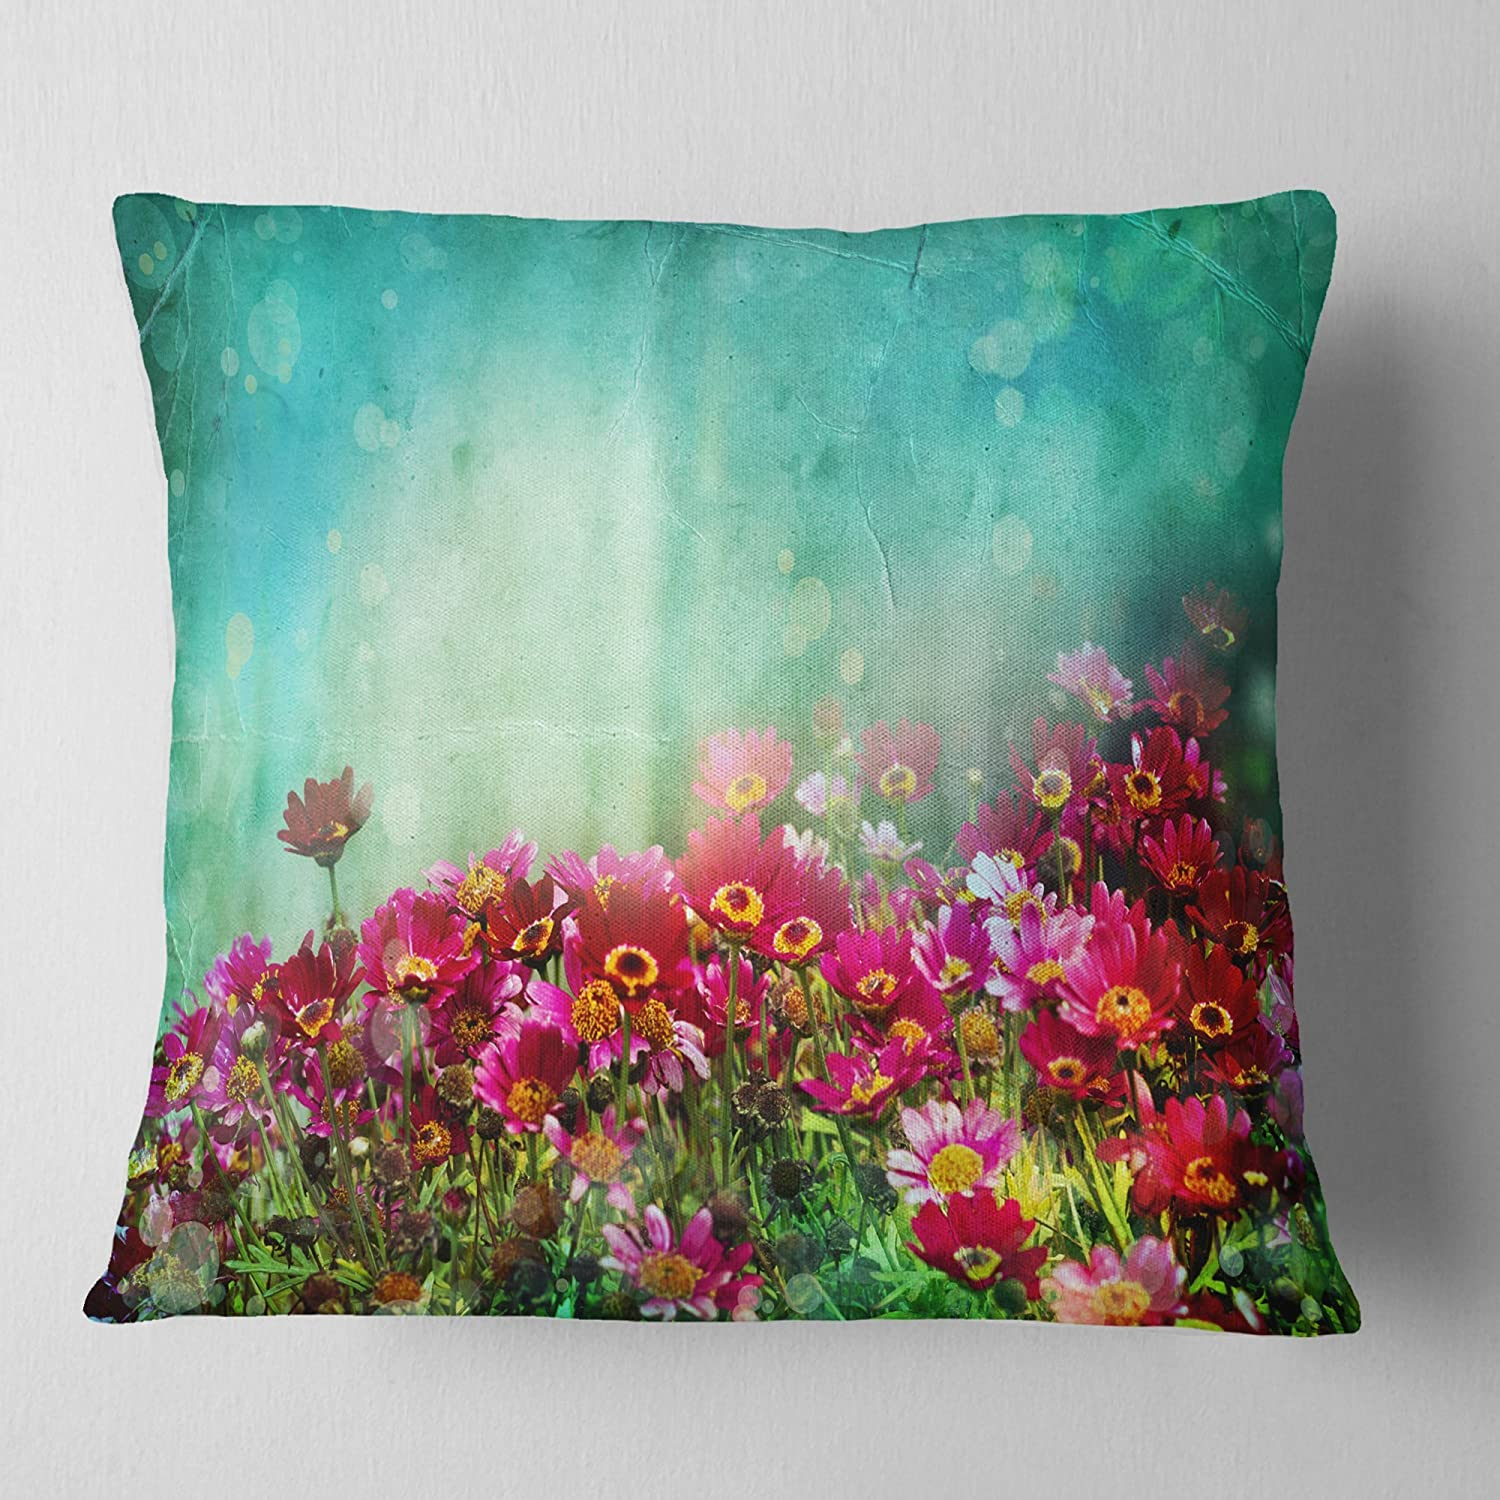 Sofa Throw Pillow 18 x 18 Designart CU14179-18-18 Little Red and Pink Flowers on Blue Floral Cushion Cover for Living Room